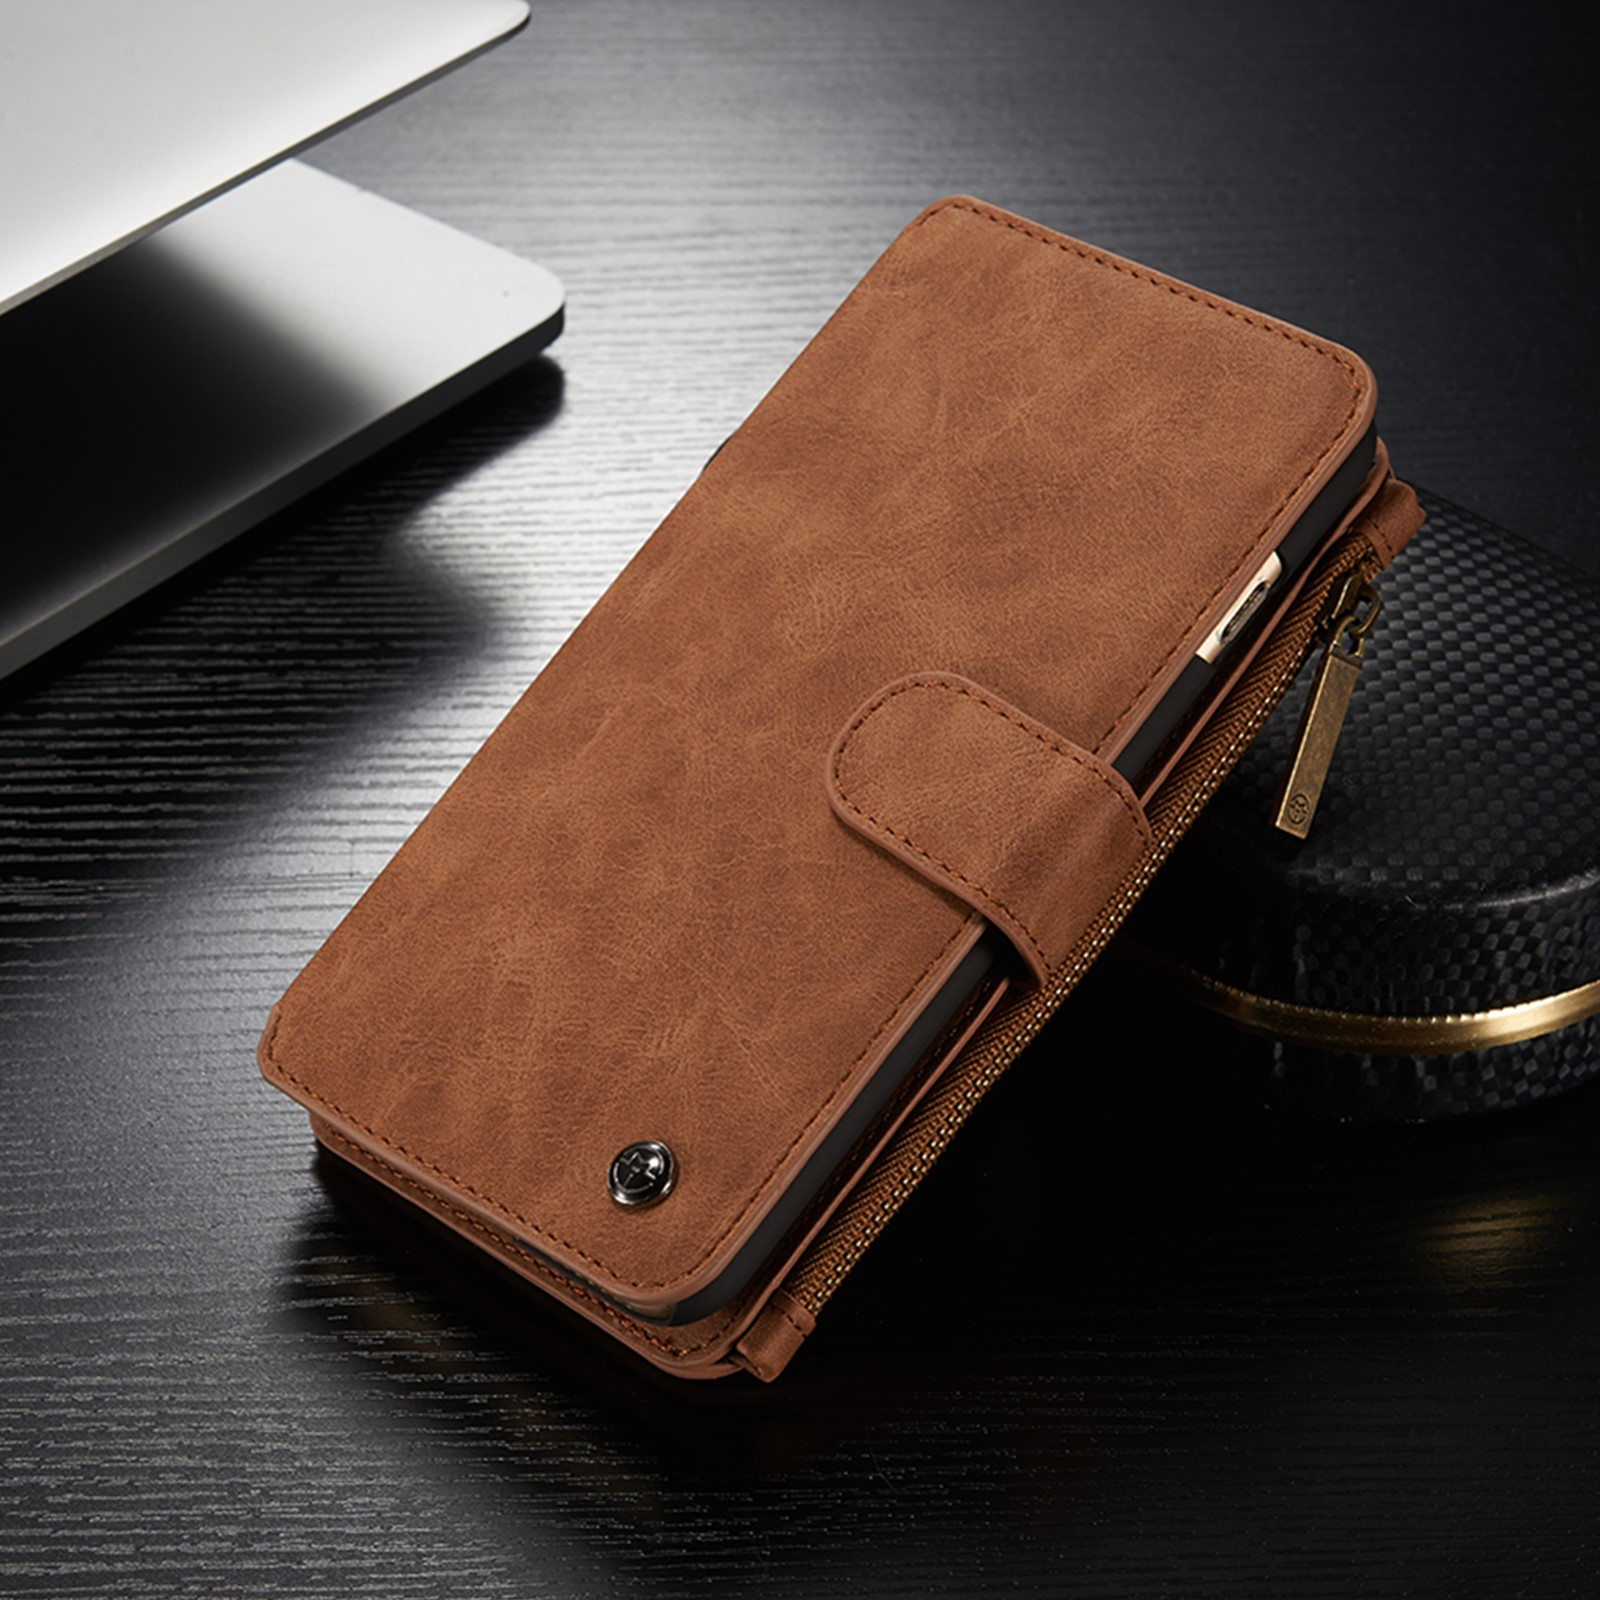 Luxury Magnetic Leather Removable Wallet Zipper Case Cover ...